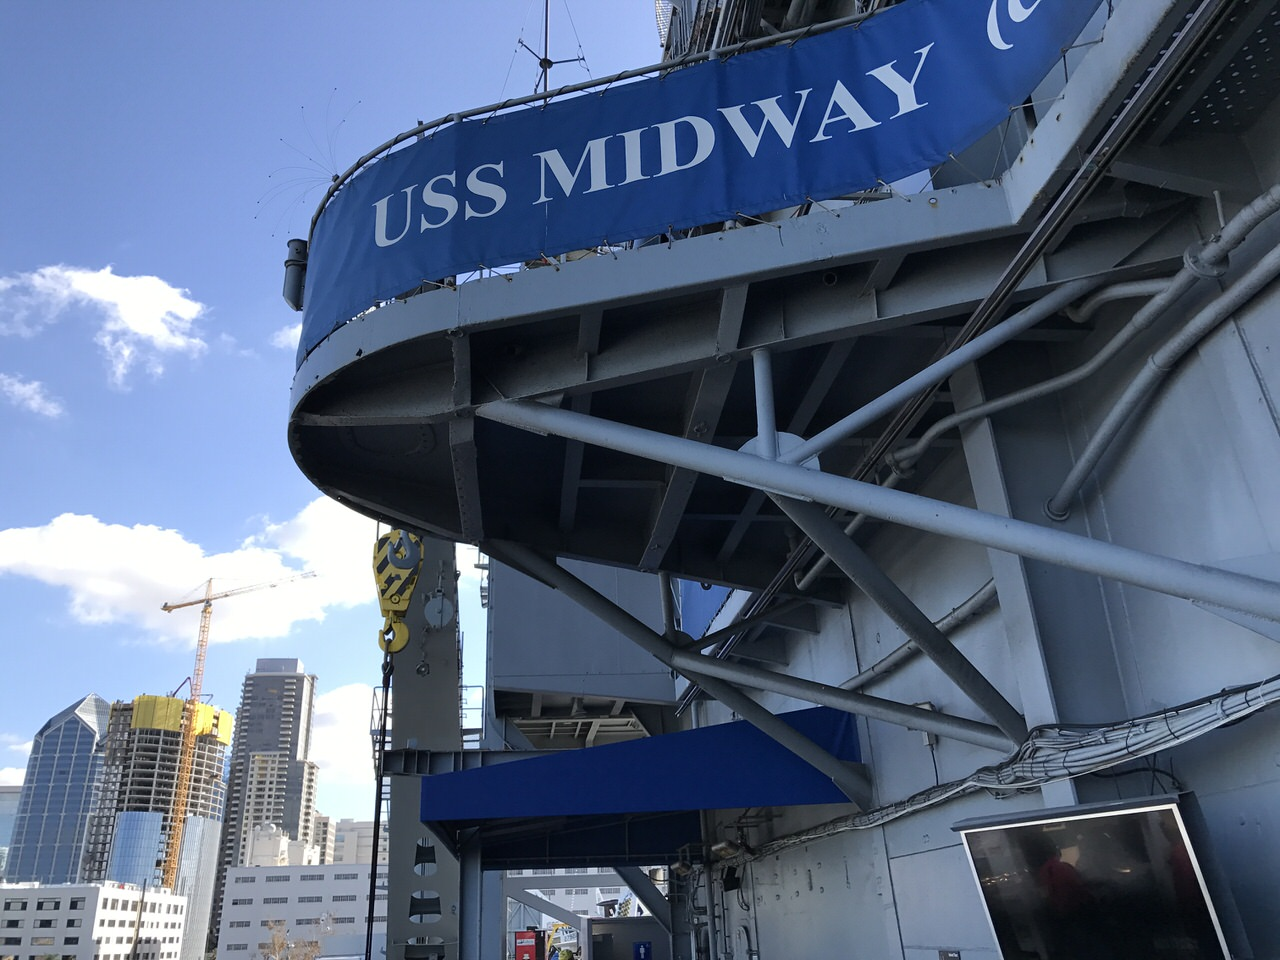 Uss midway museum 0568